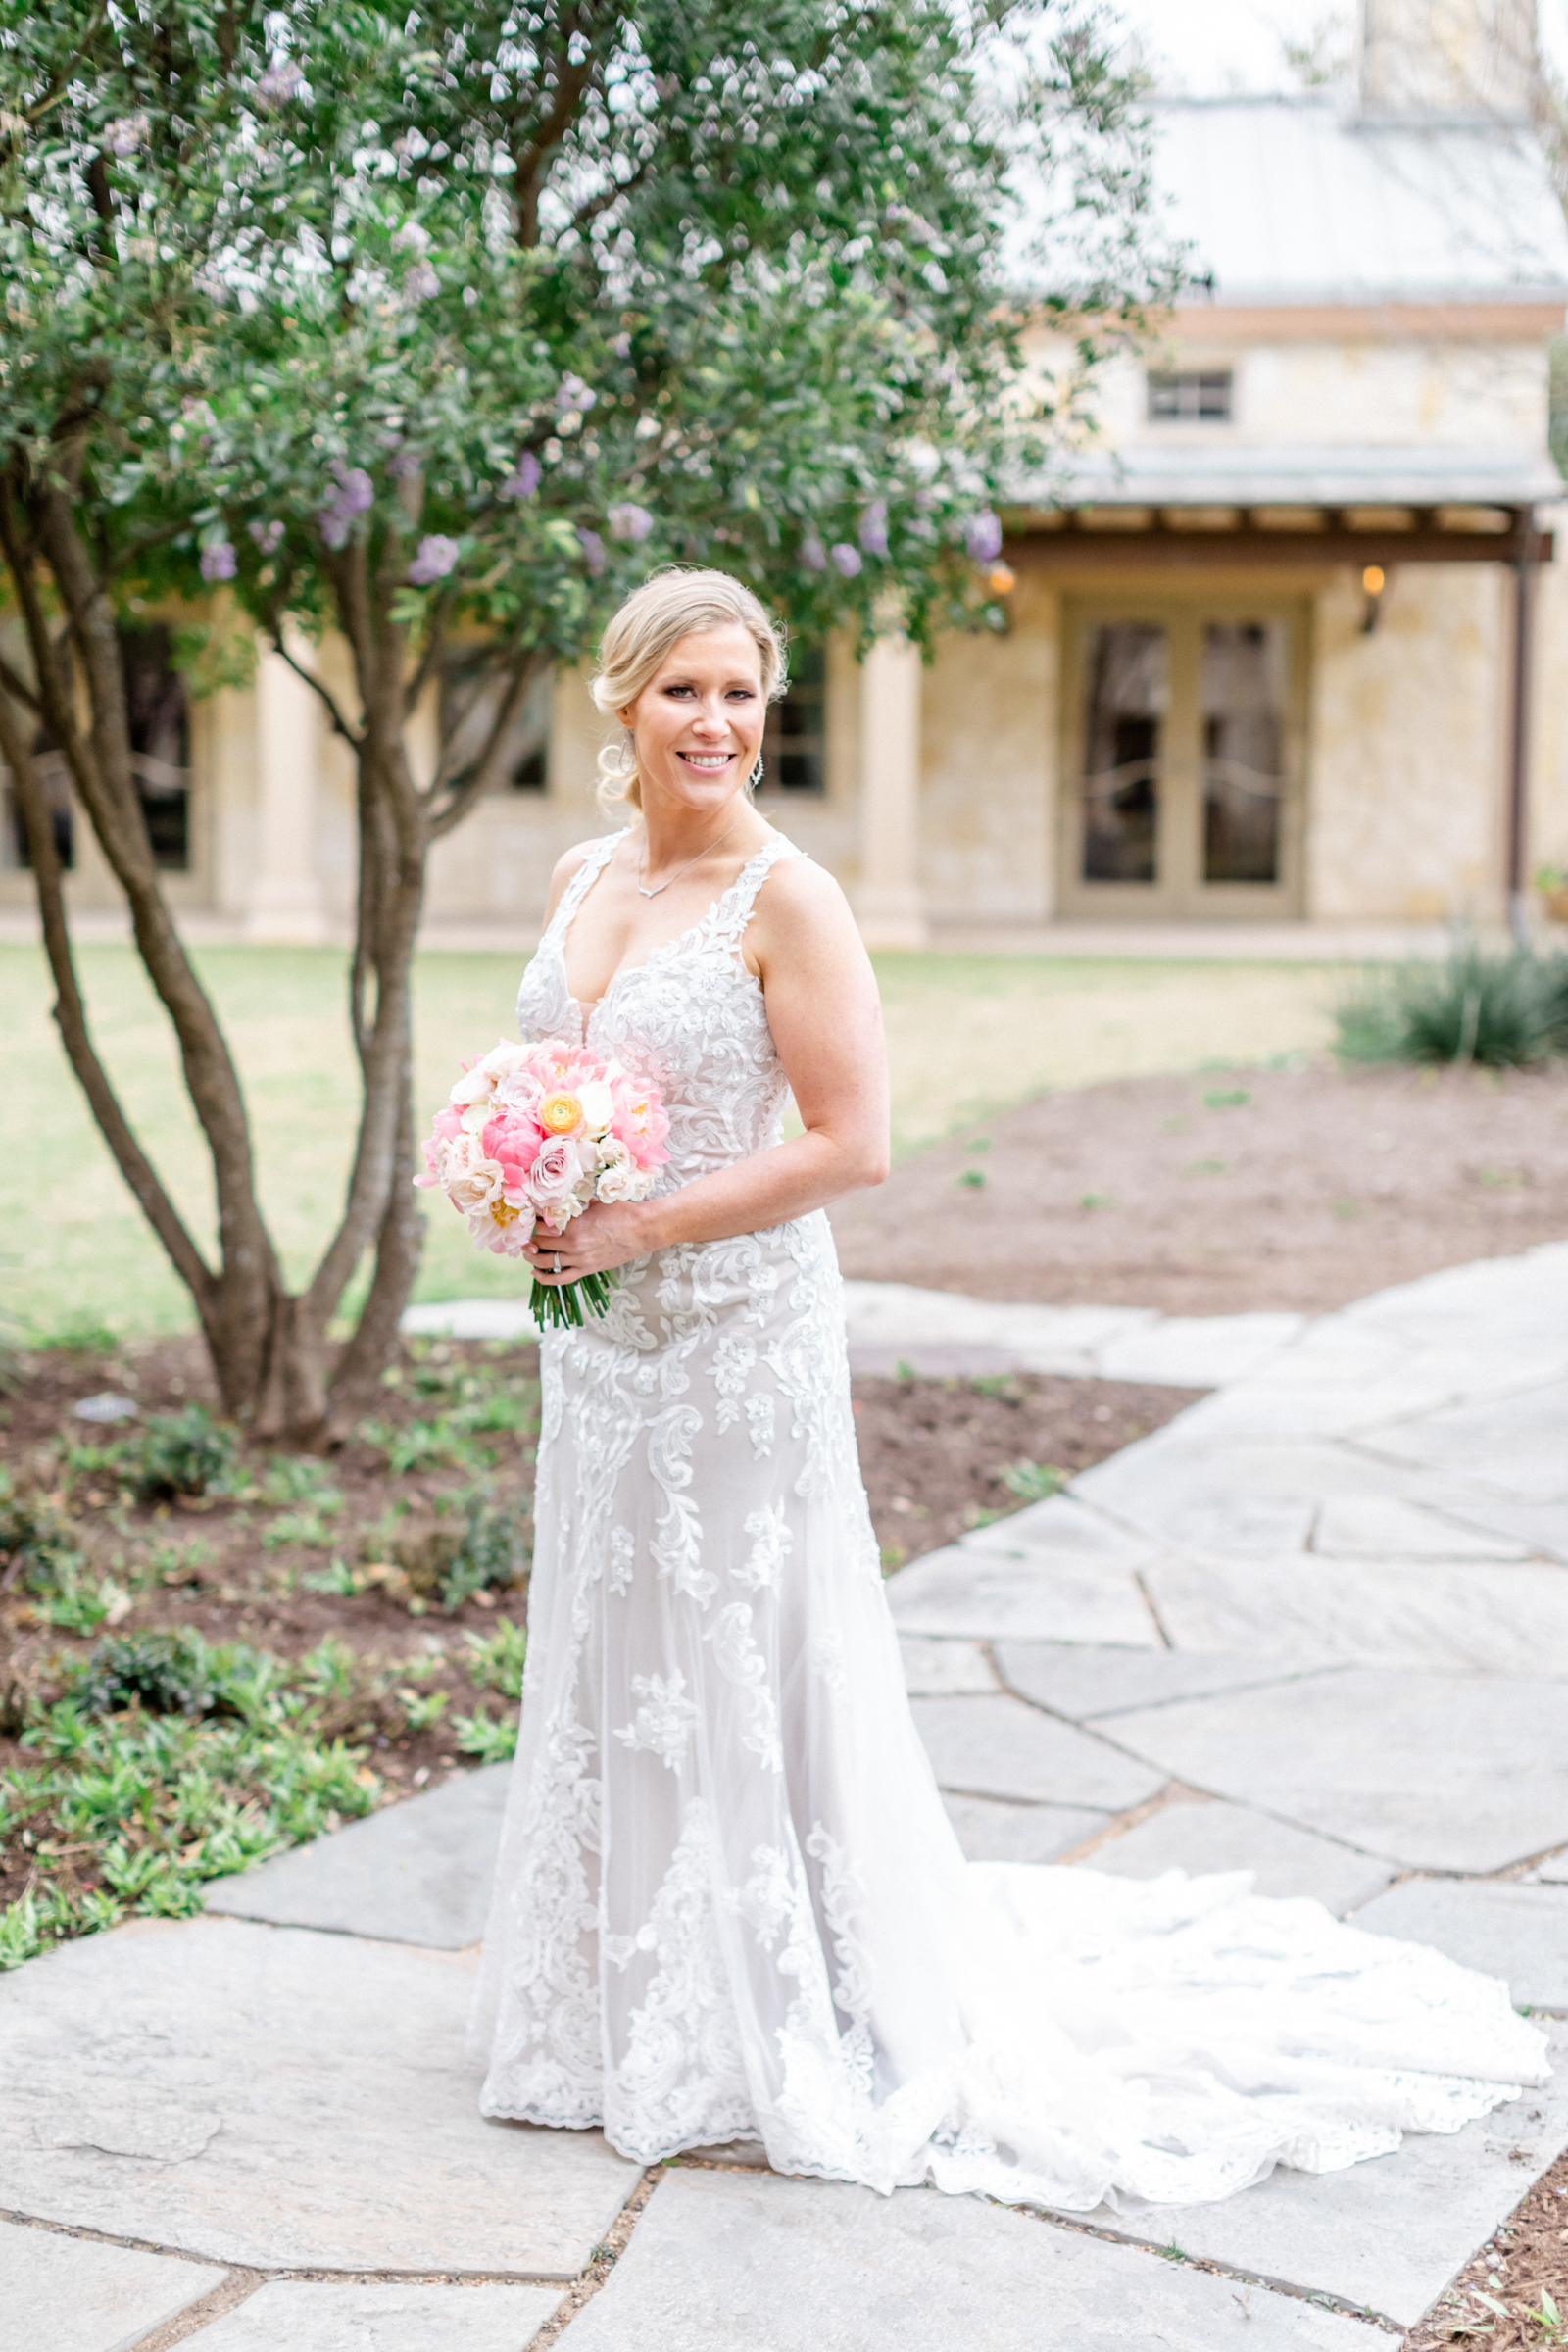 San Antonio Austin Boerne New Braunfels Texas Wedding Engagement Photographer Photography Hill Country Texas JW Marriott Sunday House Wedding Spring Wedding Coral Pink Intimate Wedding San Antonio Austin Texas photographer 50